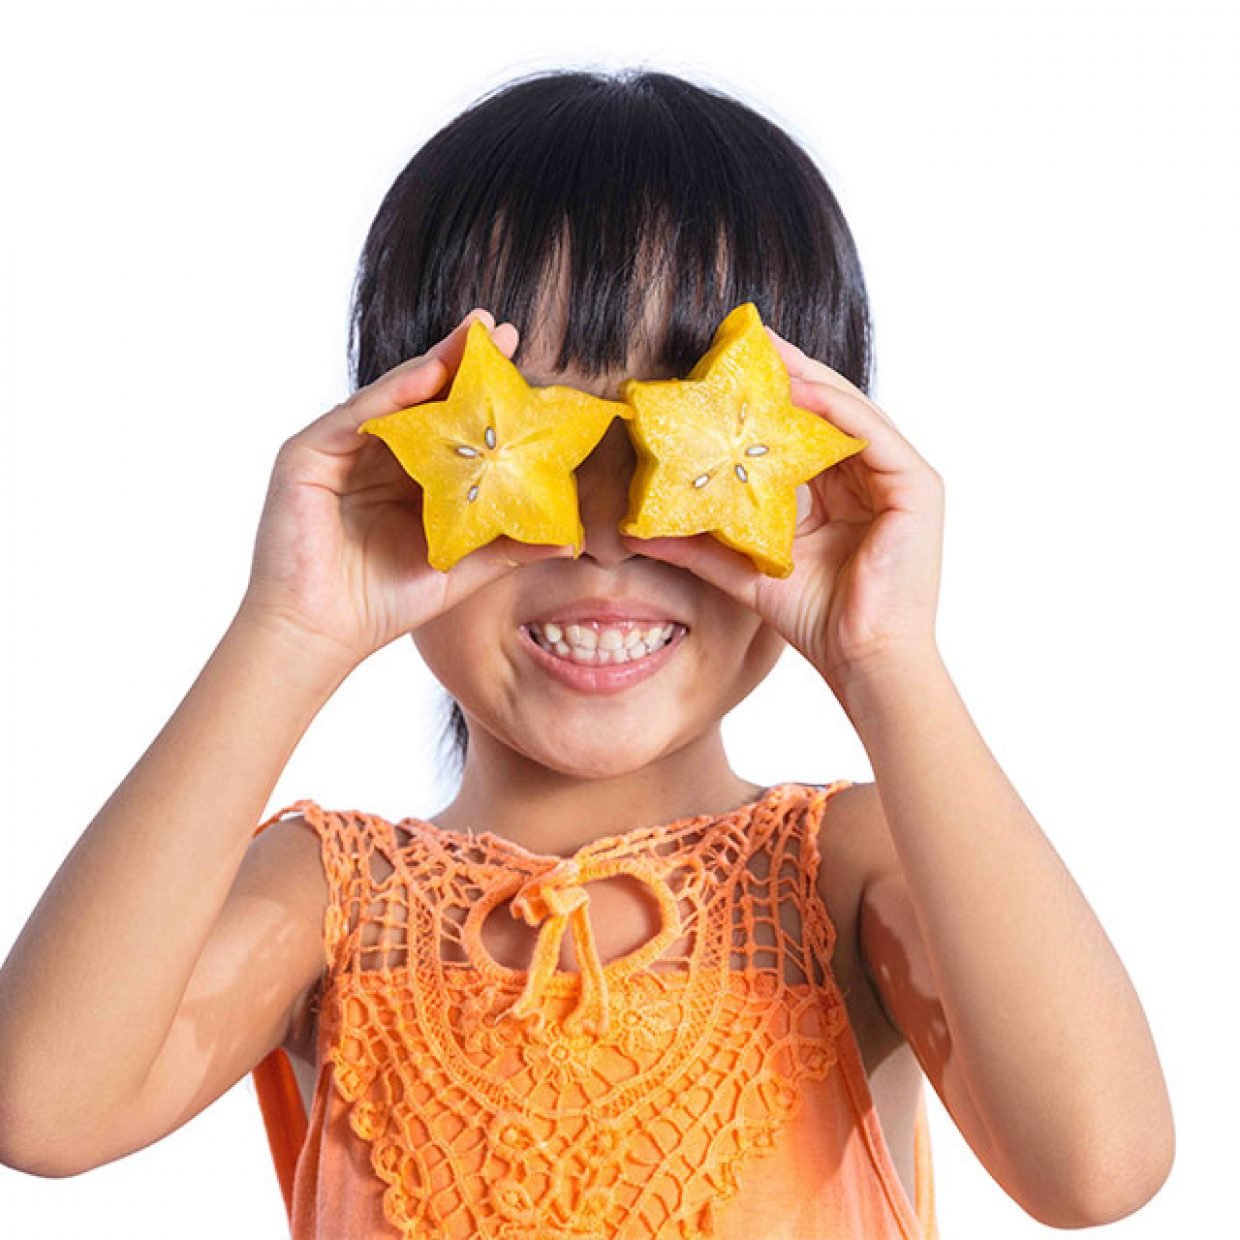 See stars with starfruit